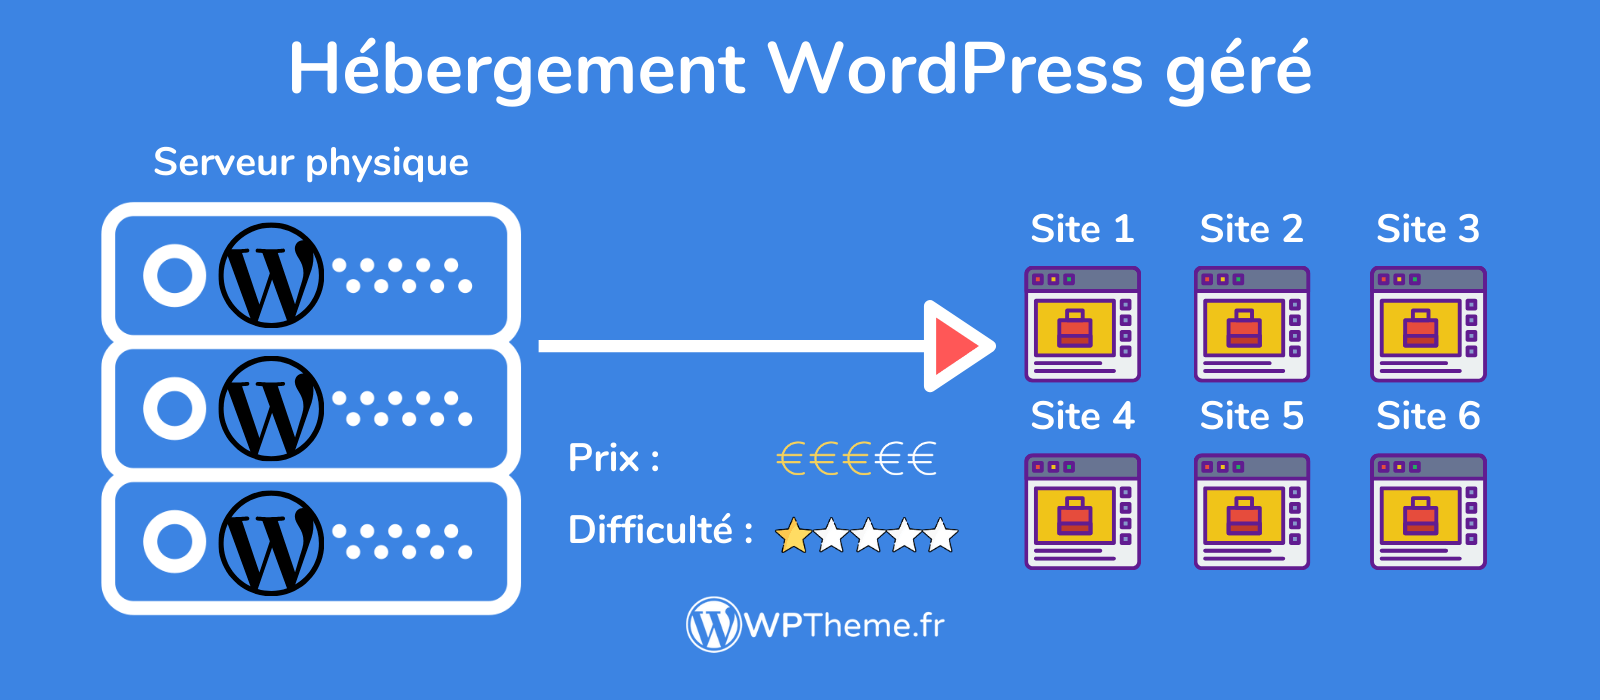 hebergement-wordpress-gere